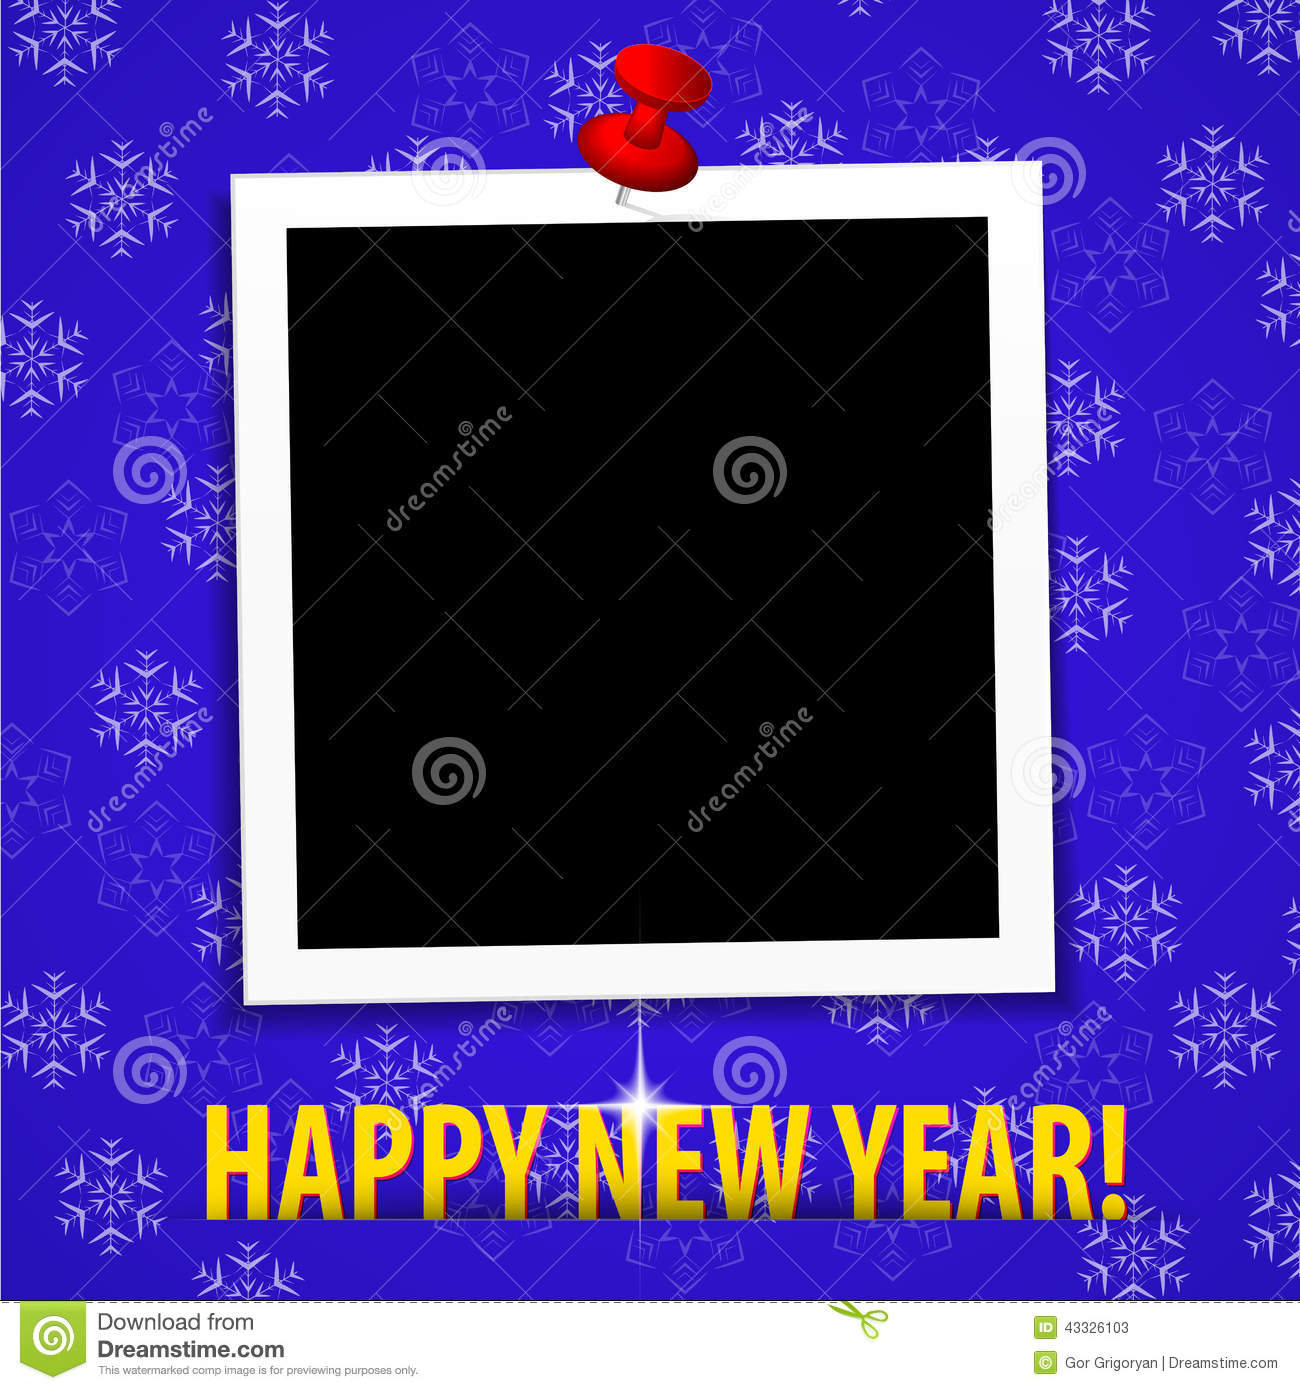 Happy New Year Greeting Card With Blank Photo Frame Stock Vector